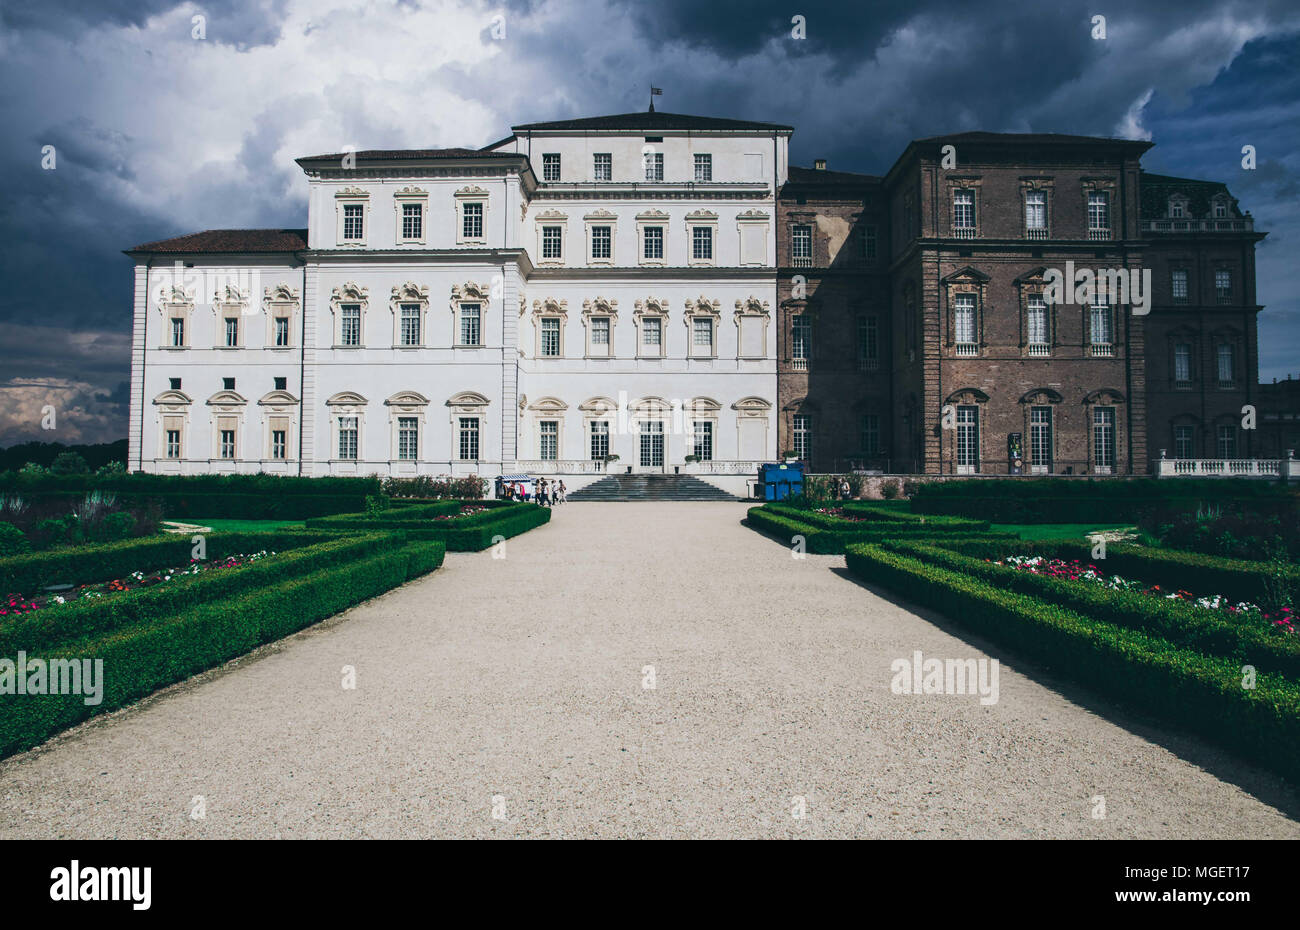 A View of the Palace Reggia of Venaria, near Turin, home of Italian kings in the 19th century and of its royal gardens - Stock Image